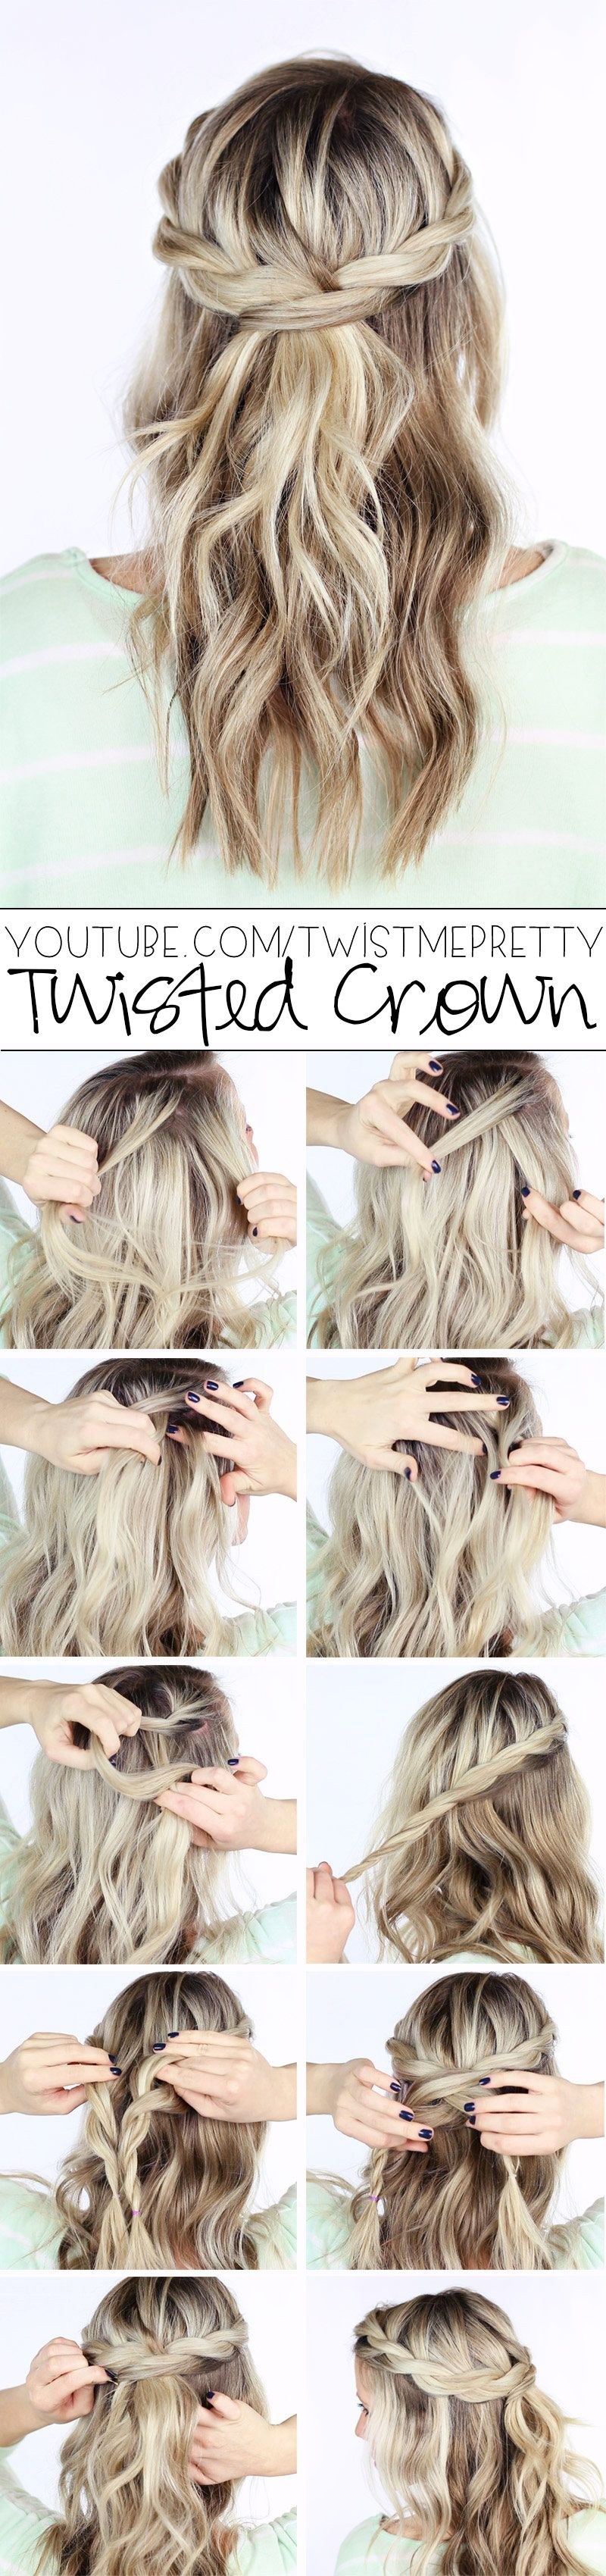 10 Easy Tutorials to Make Wedding Hair Pinterest